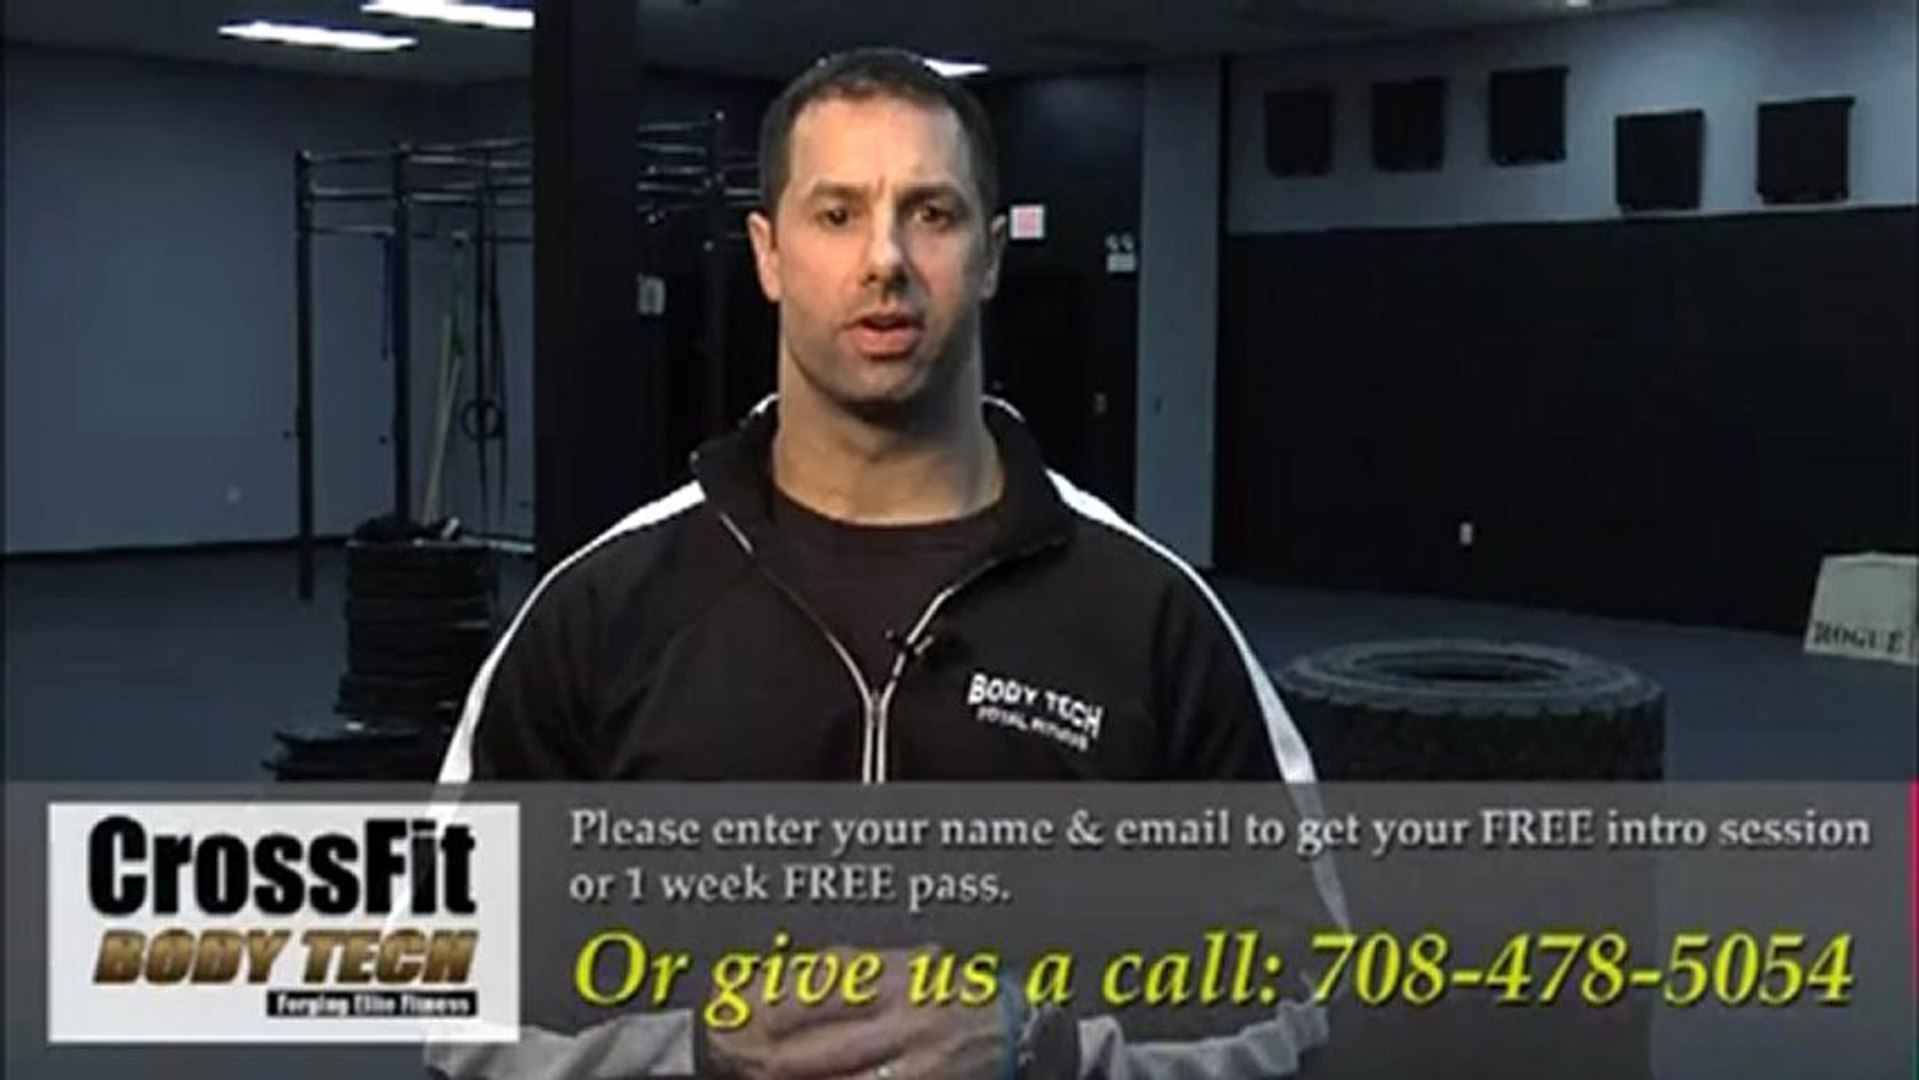 Frankfort IL CrossFit Body Tech Exercise l CrossFit Body Tech in Frankfort IL